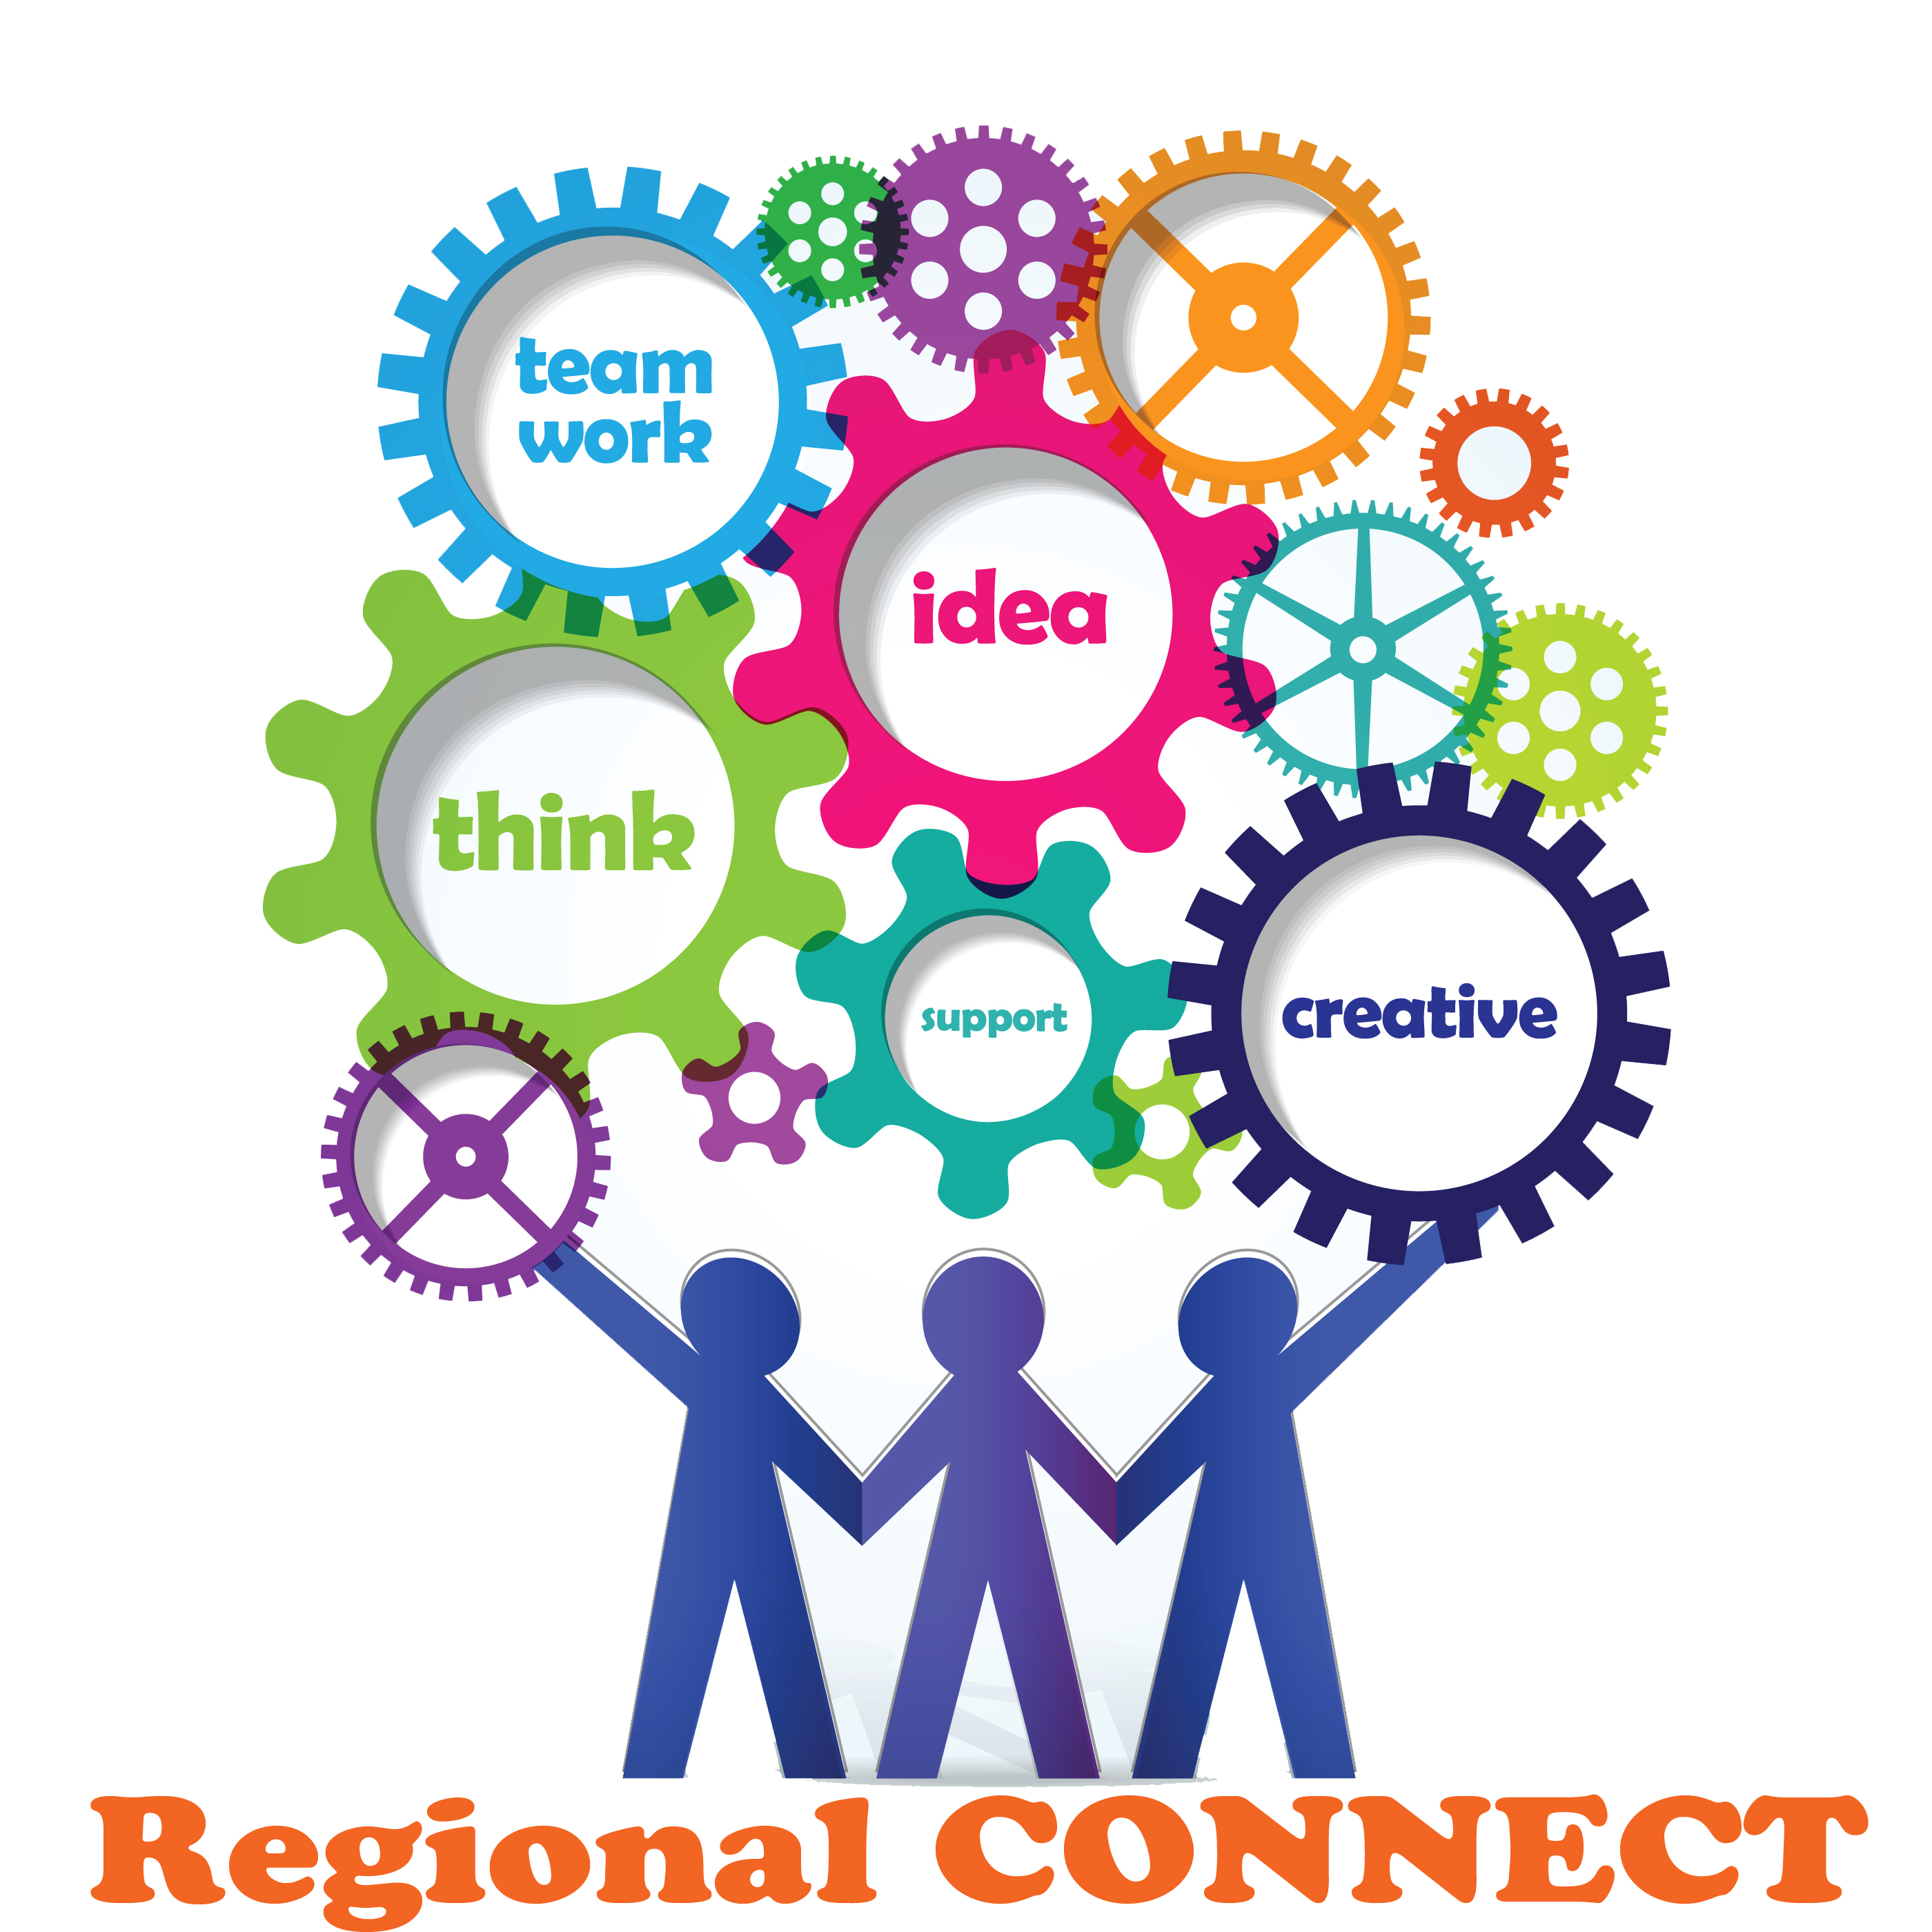 Regional Connect